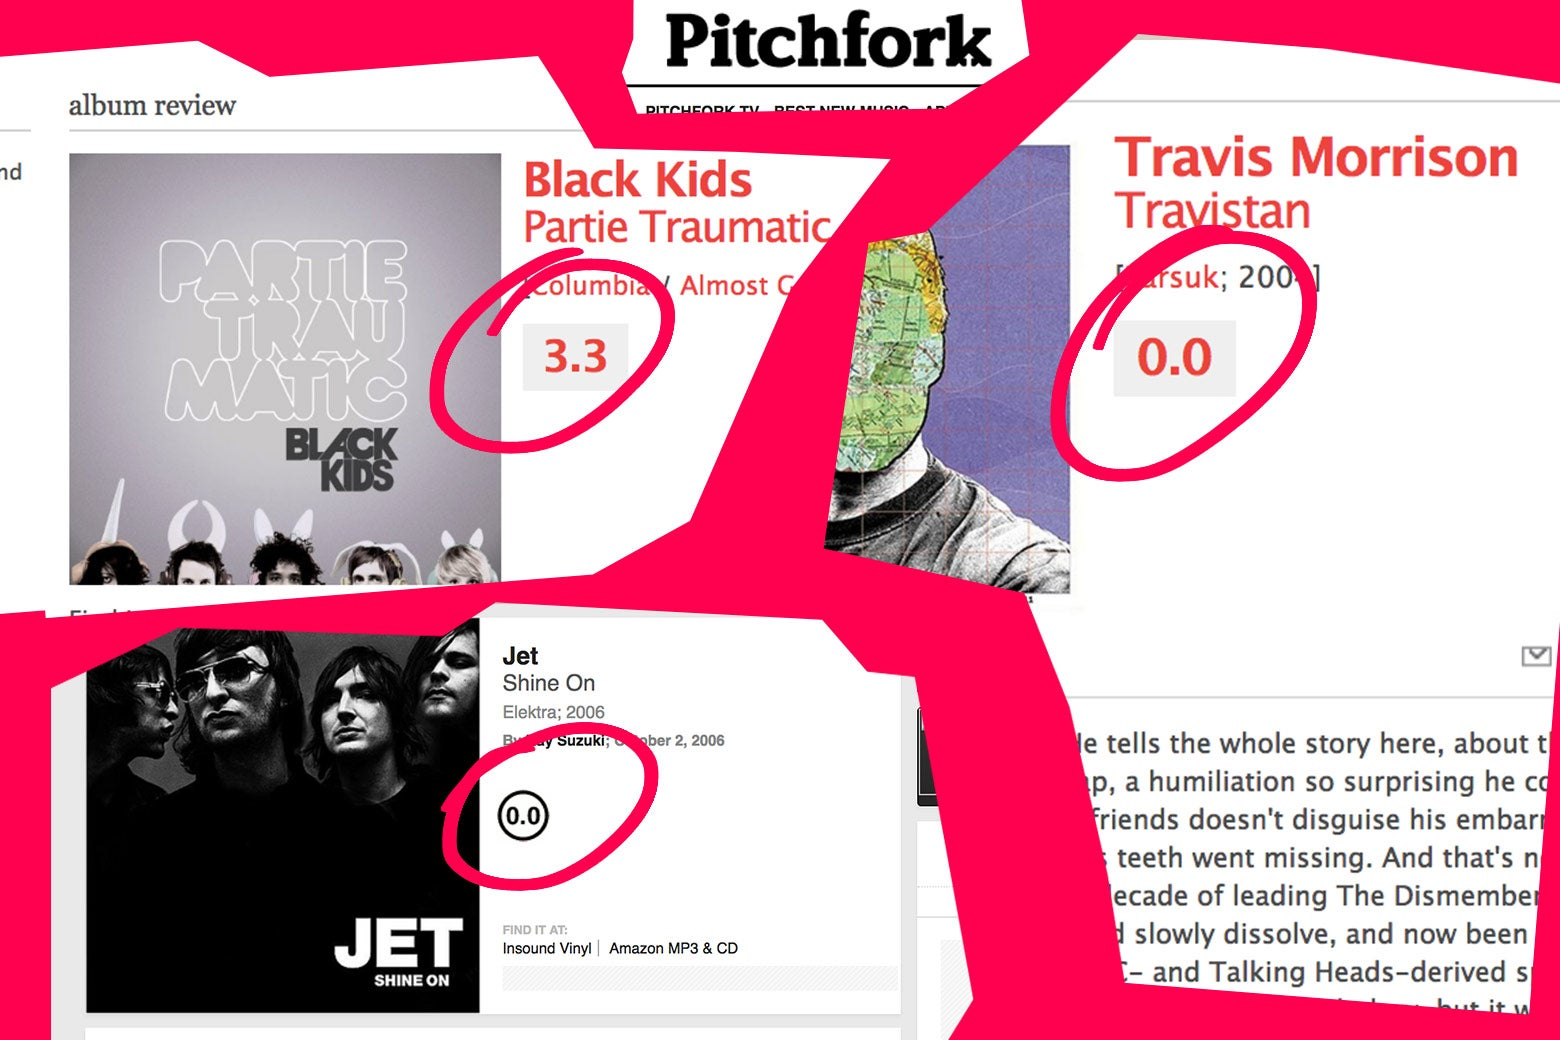 Pitchfork reviews.